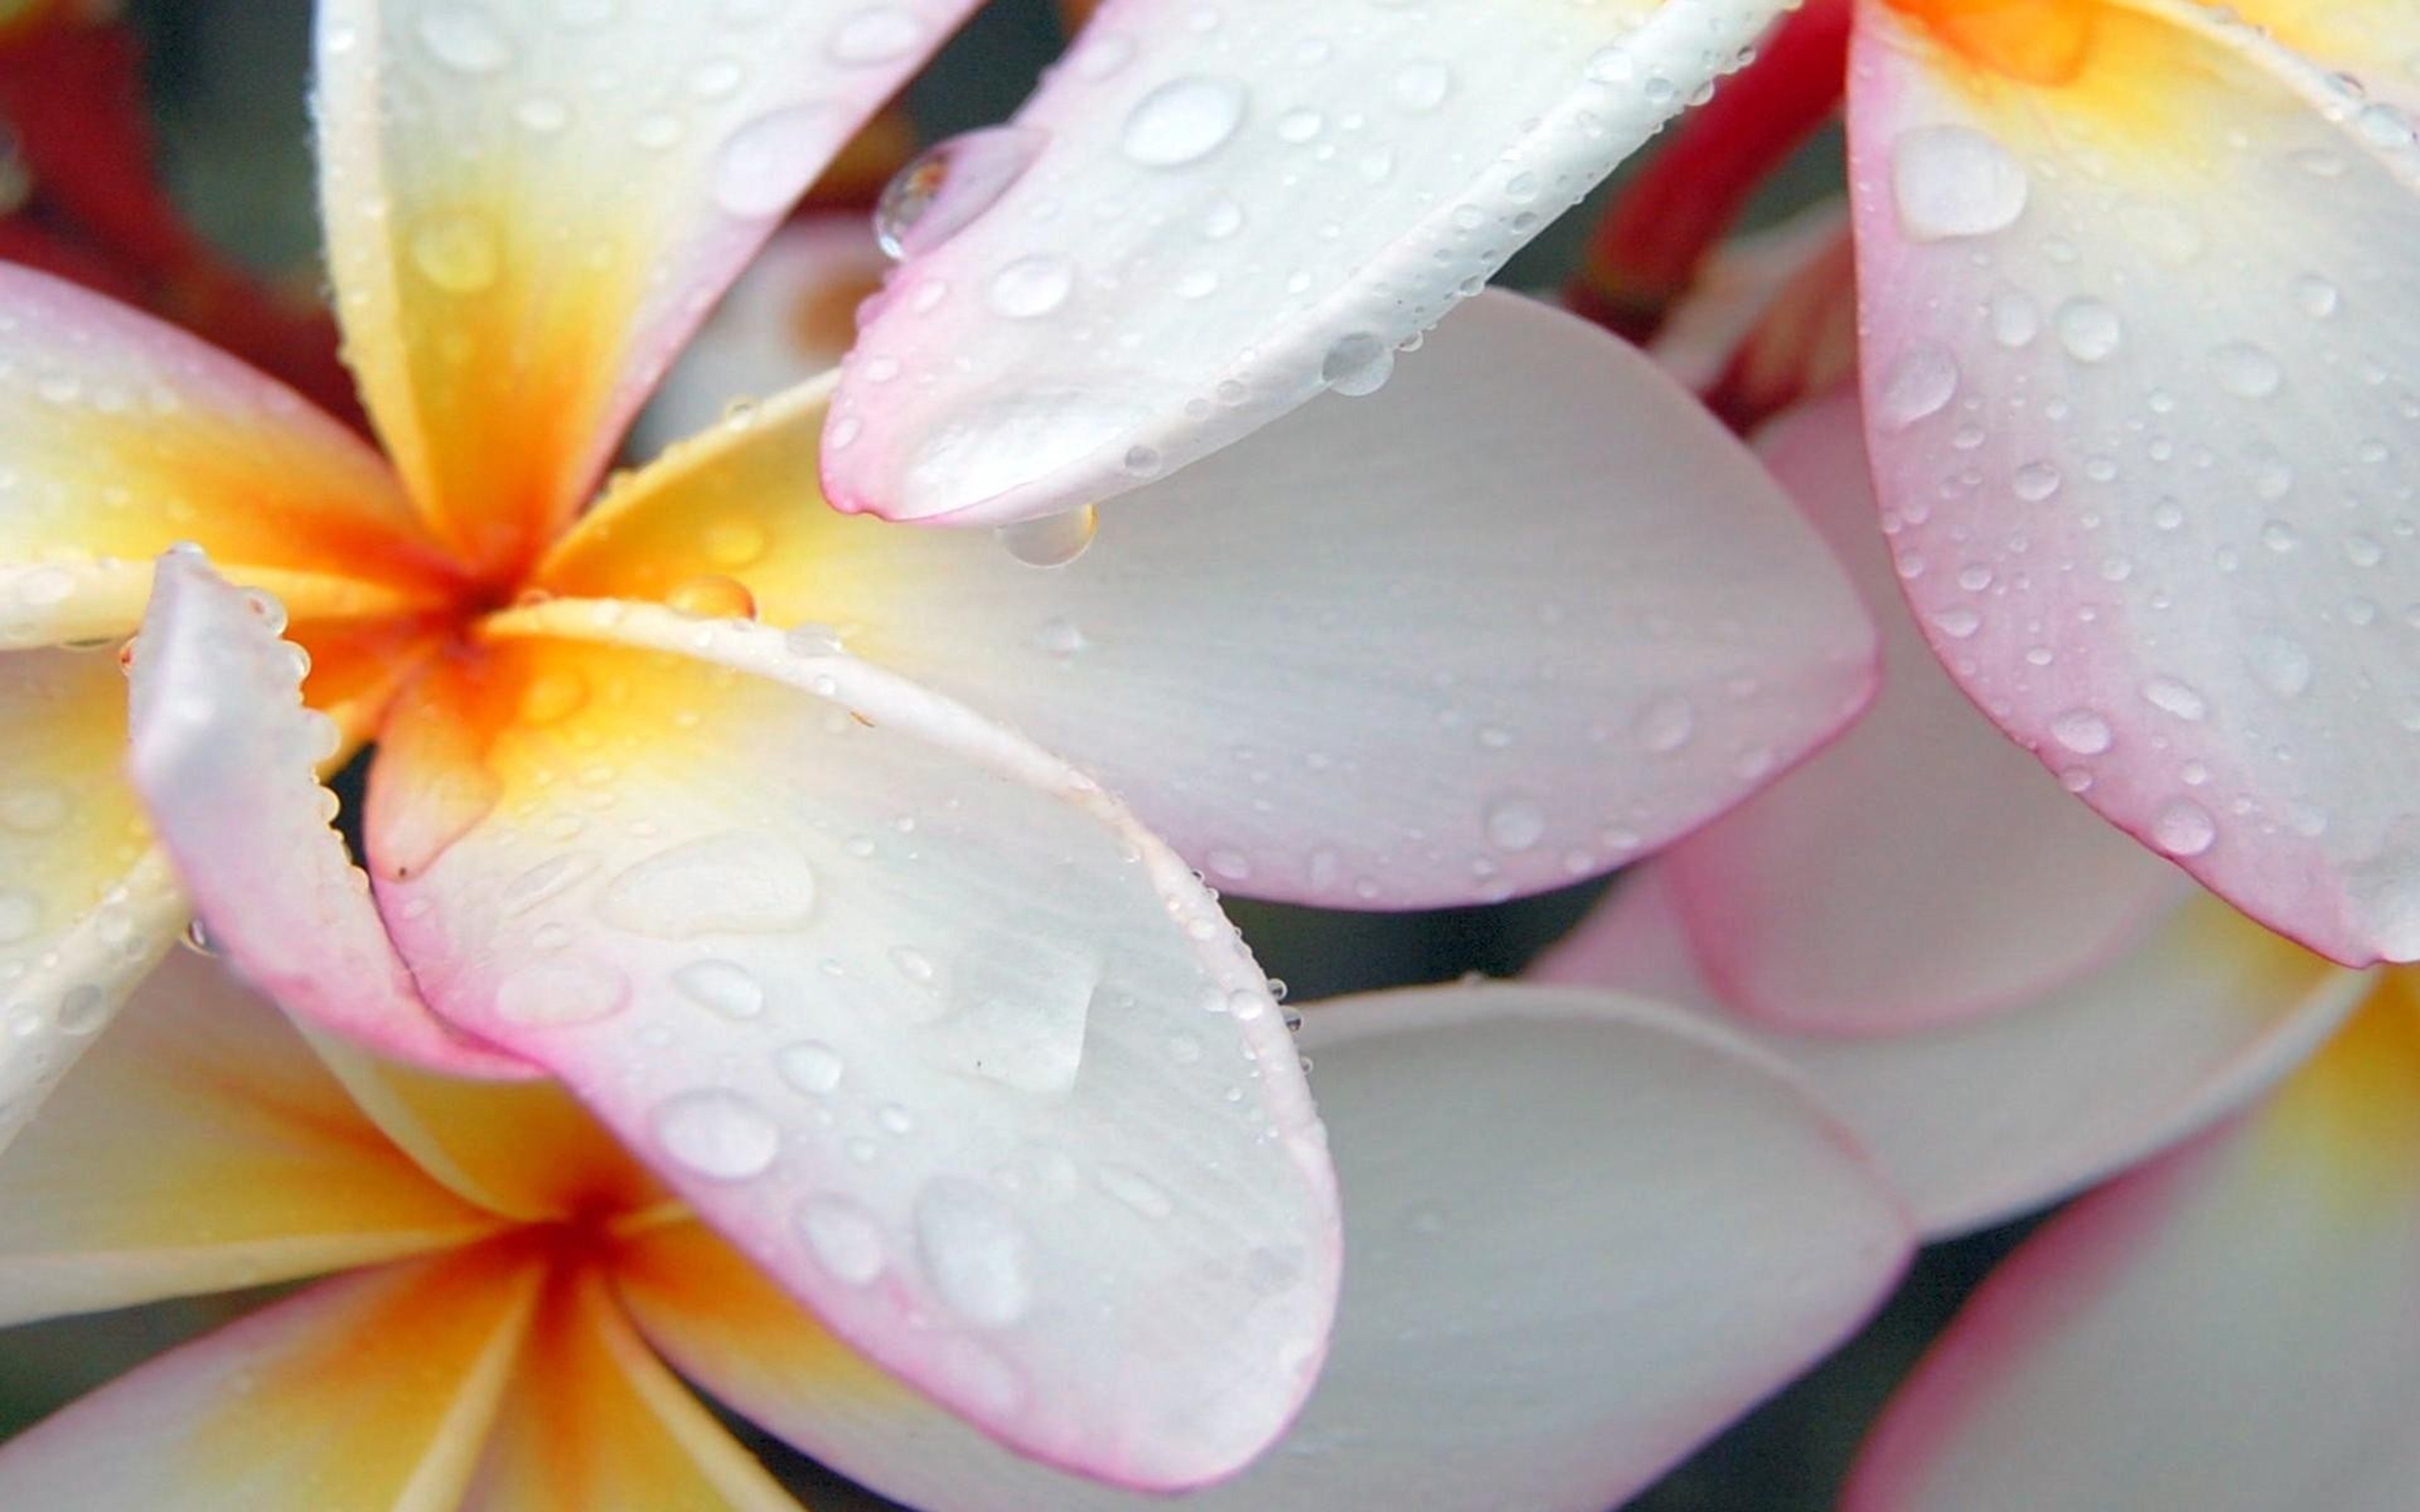 25671 download wallpaper Plants, Flowers, Drops screensavers and pictures for free